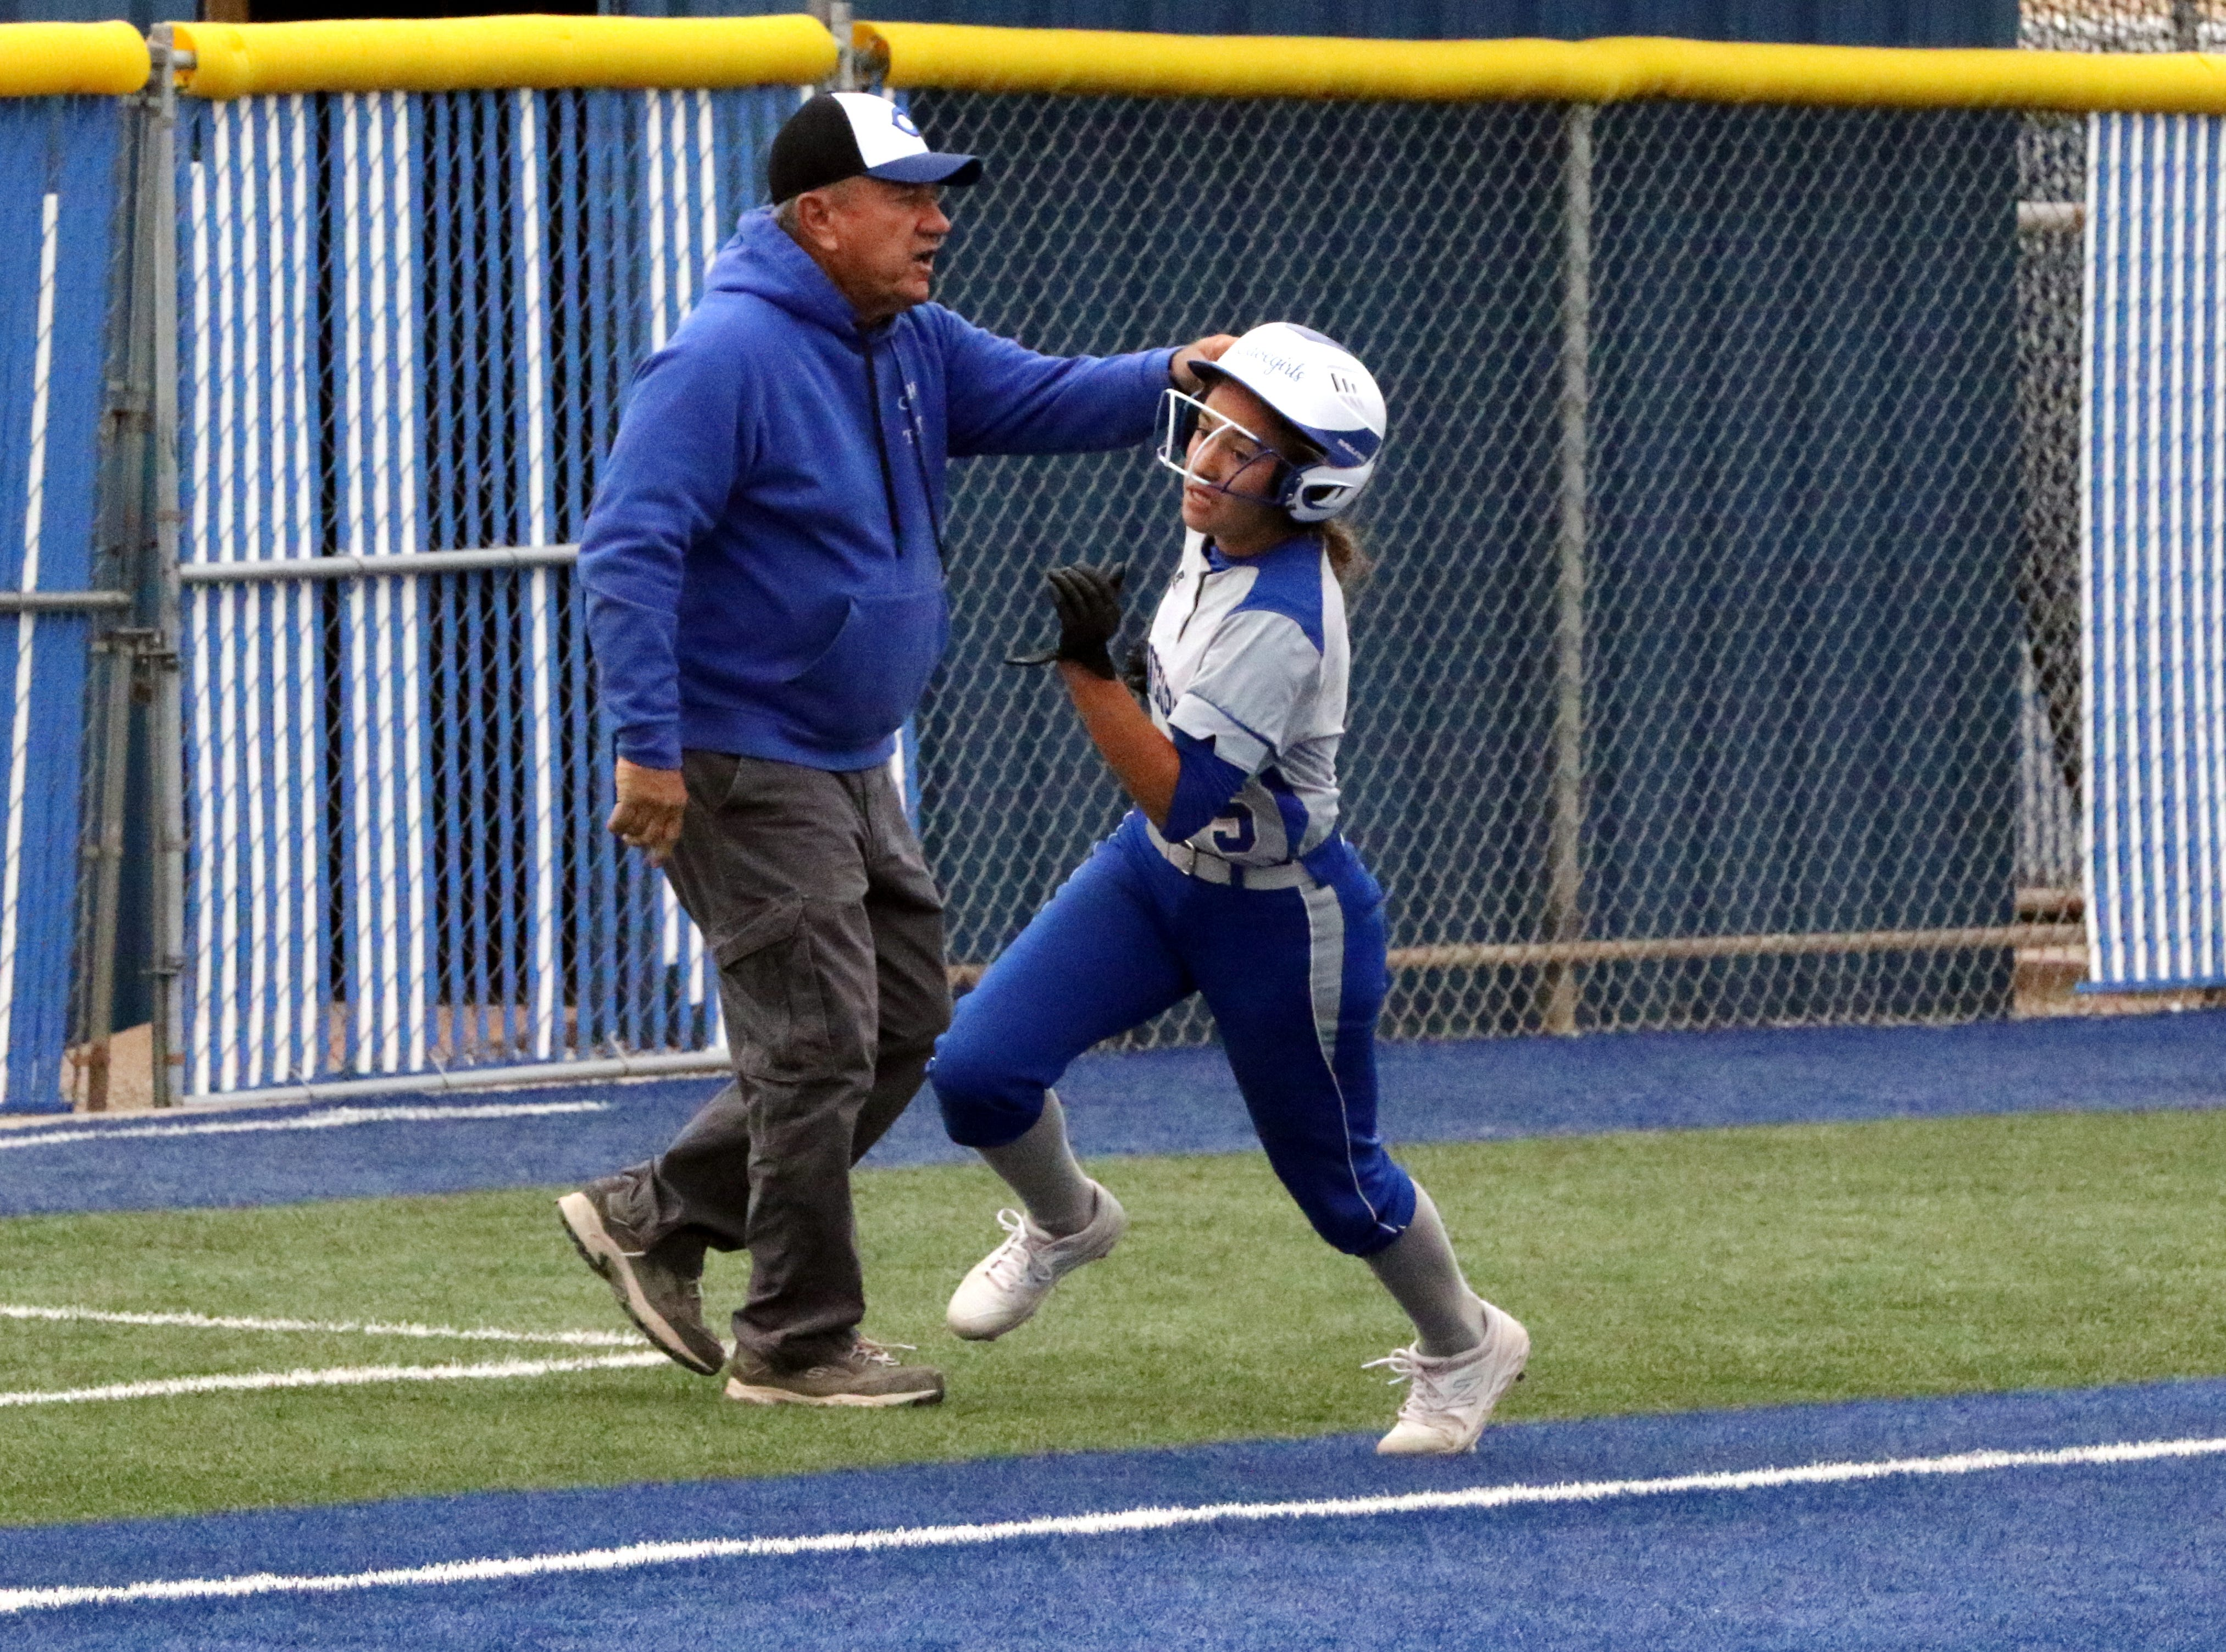 Photo highlights of the doubleheader between Carlsbad and Lovington on April 12, 2019. Carlsbad won Game 1, 8-2 and Game 2, 13-3.